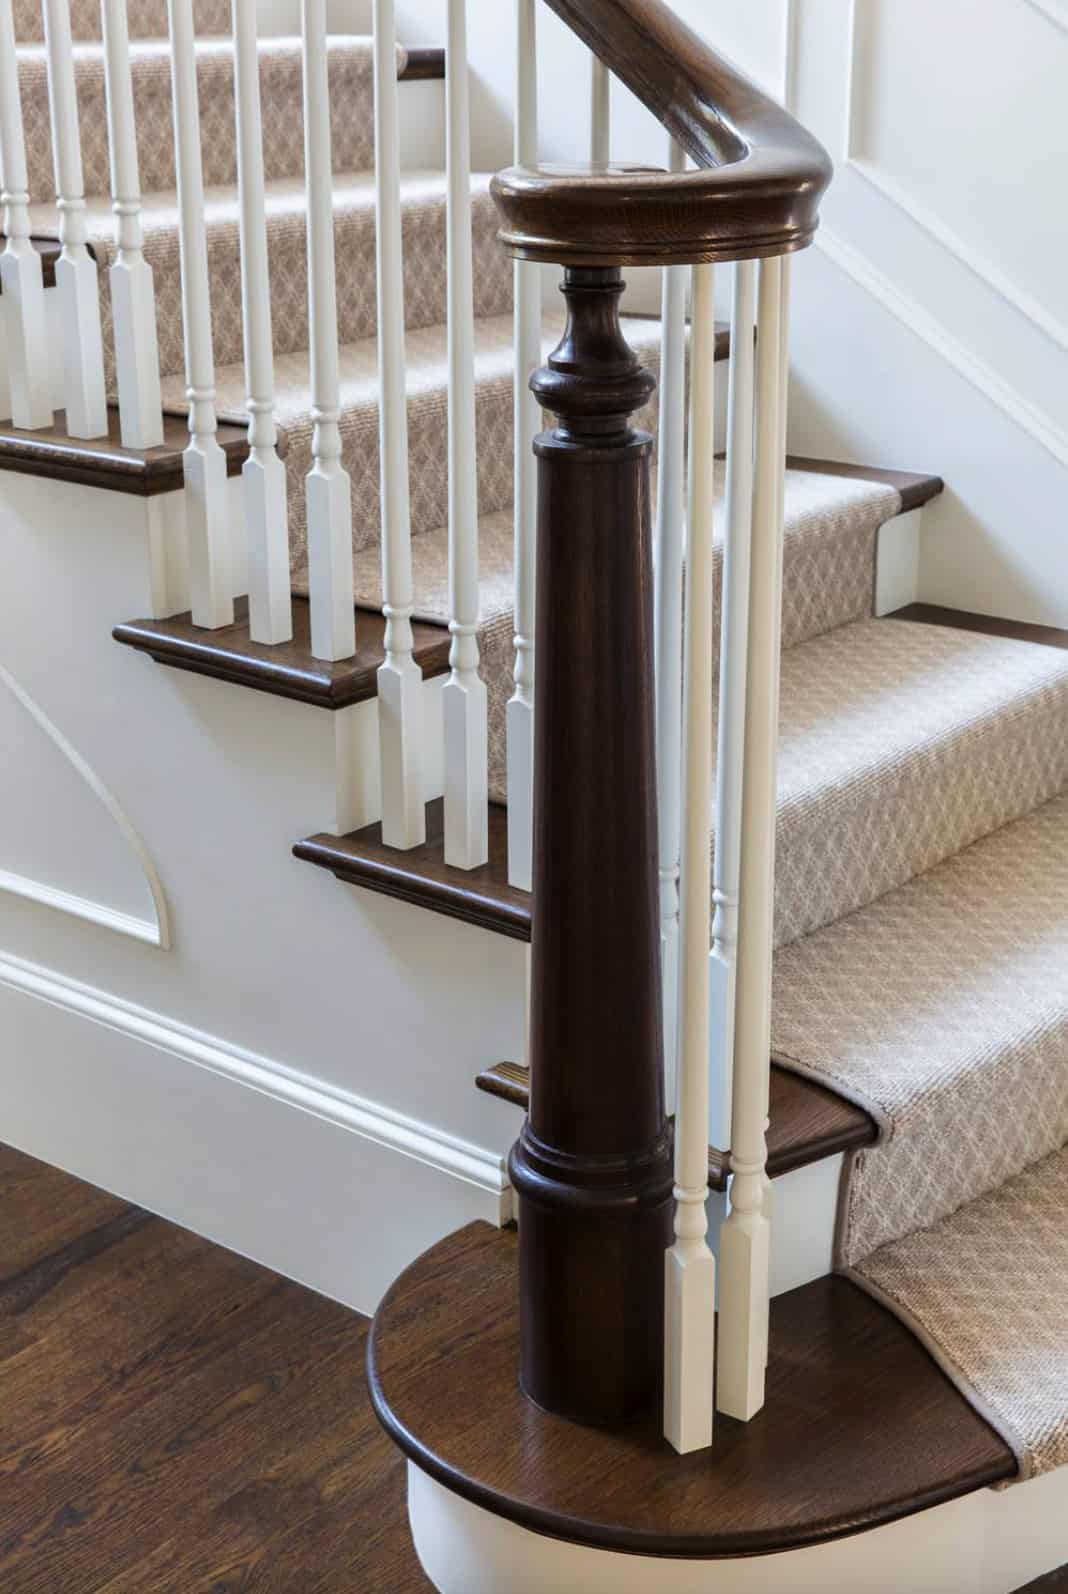 newel-and-bannister-detail-of-traditional-staircase